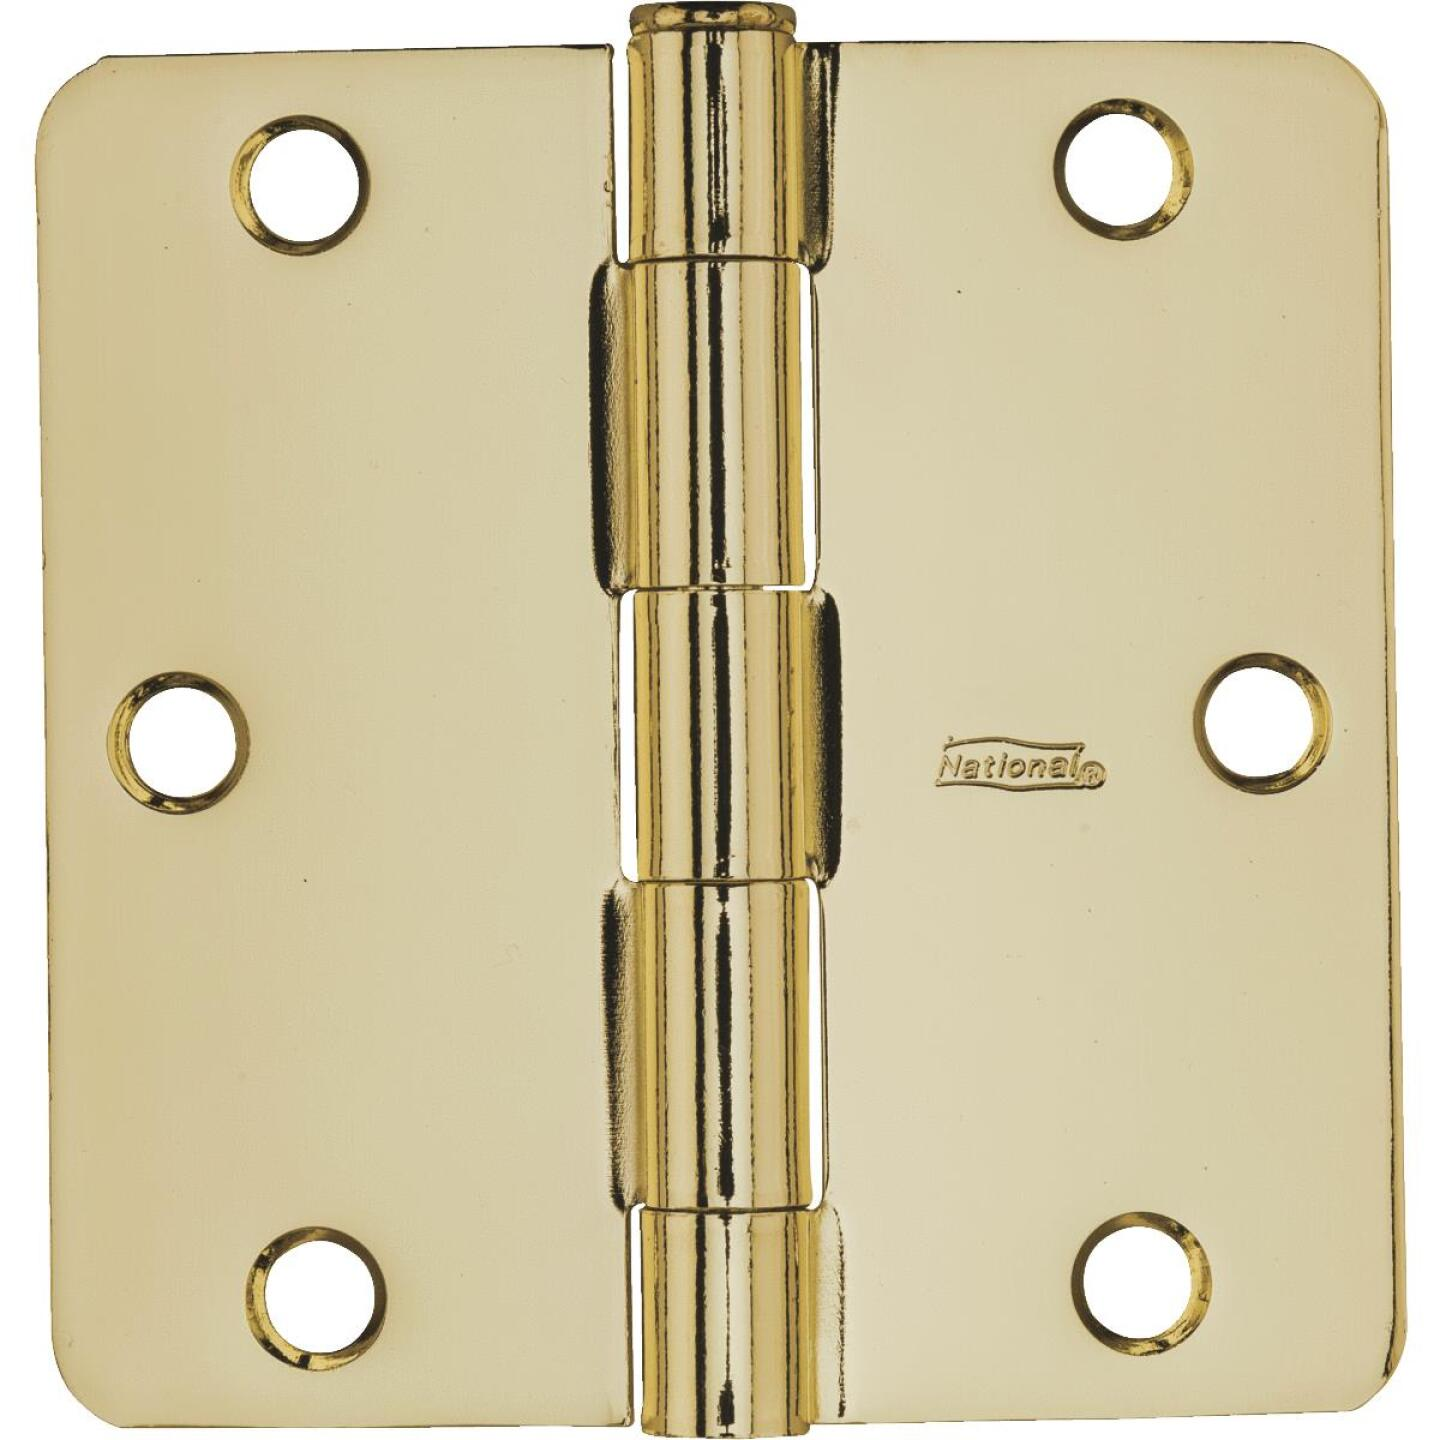 National 3-1/2 In. x 1/4 In. Radius Polished Brass Door Hinge Image 2